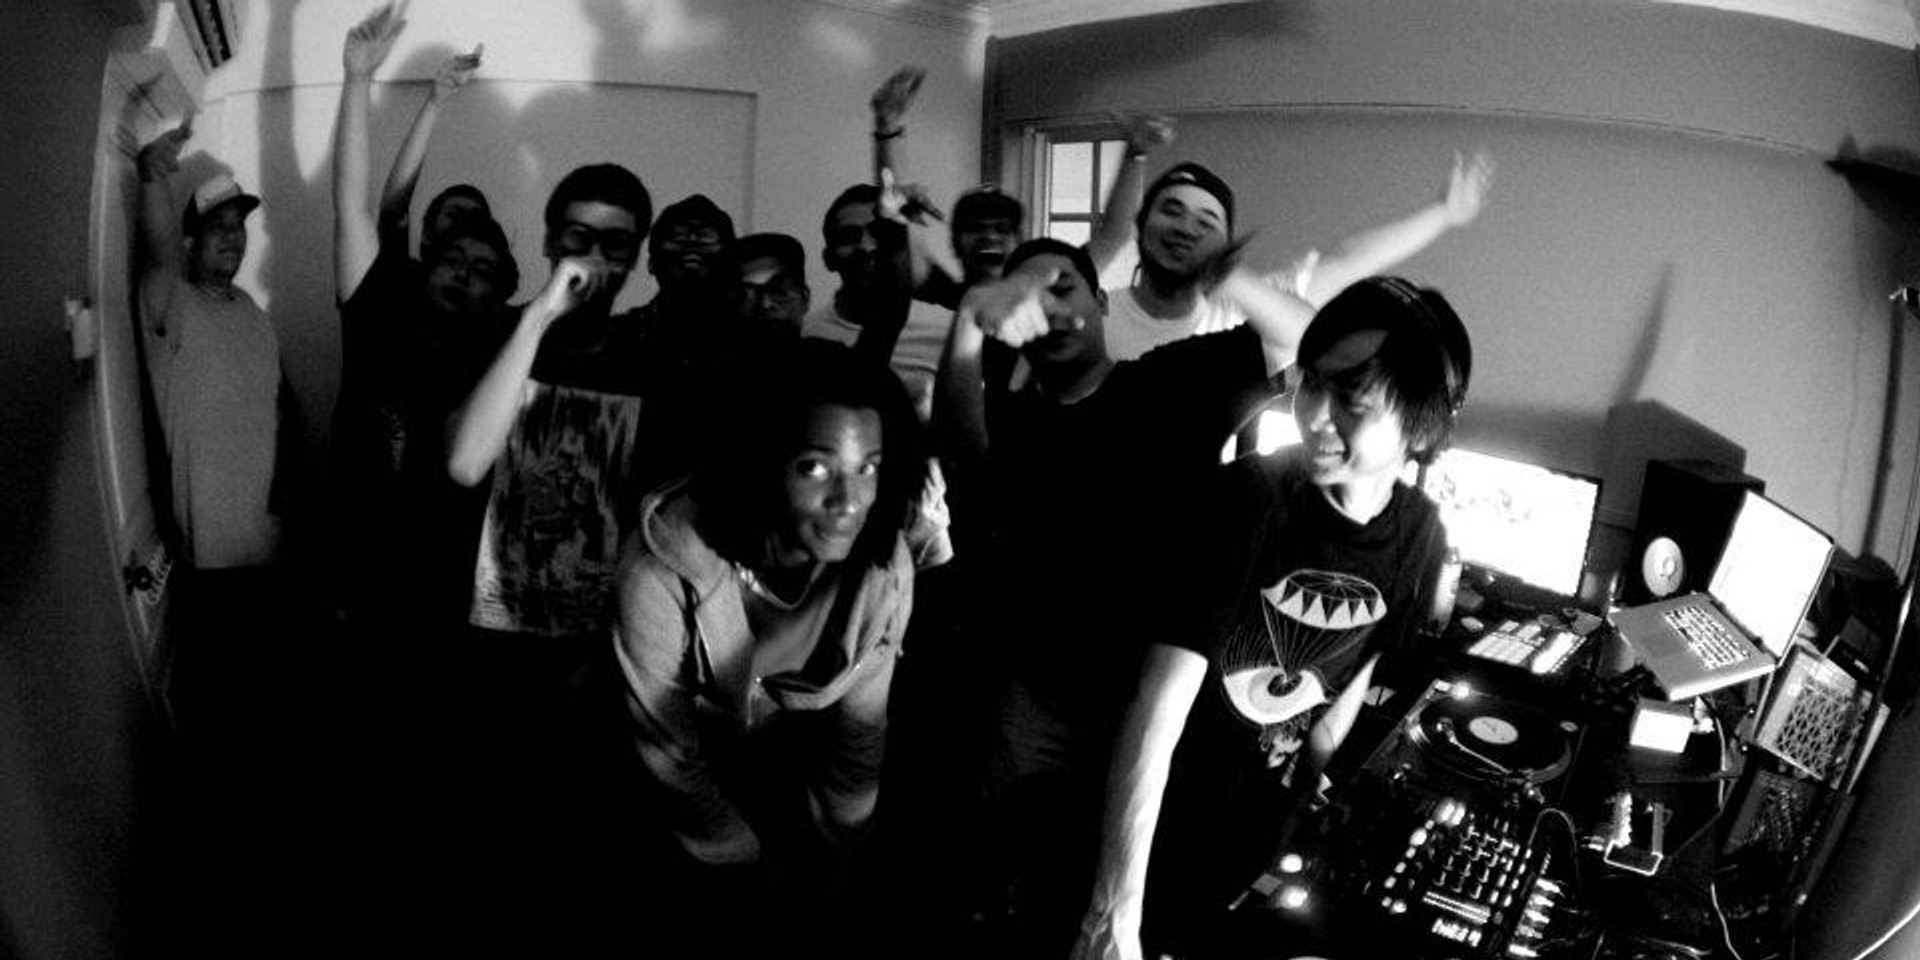 Singapore's Boiler Room: Panoptkn returns with a new series